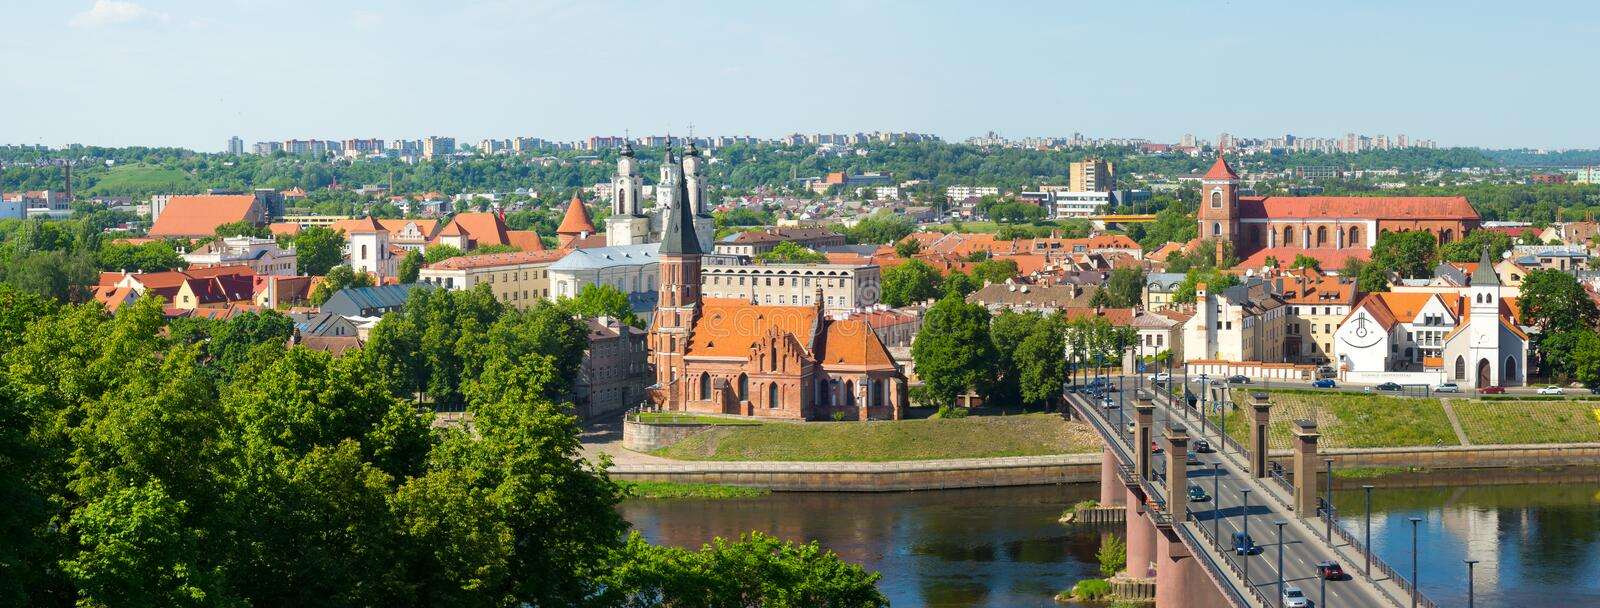 Kaunas old town day time landscape royalty free stock photos